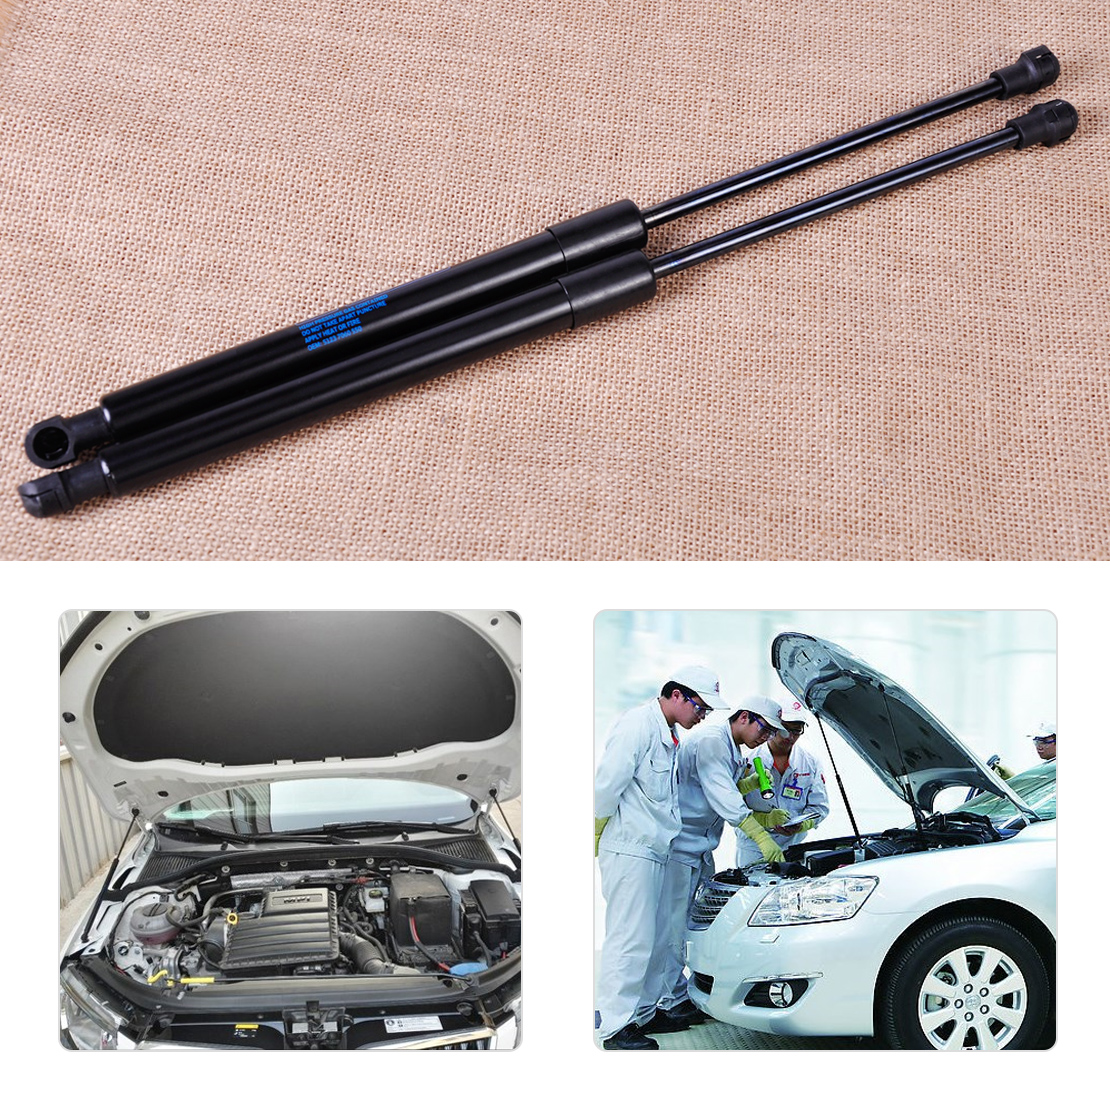 2 Left Right Trunk Lid Lift Support Shocks Struts Set for BMW E46 Coupe//Sedan